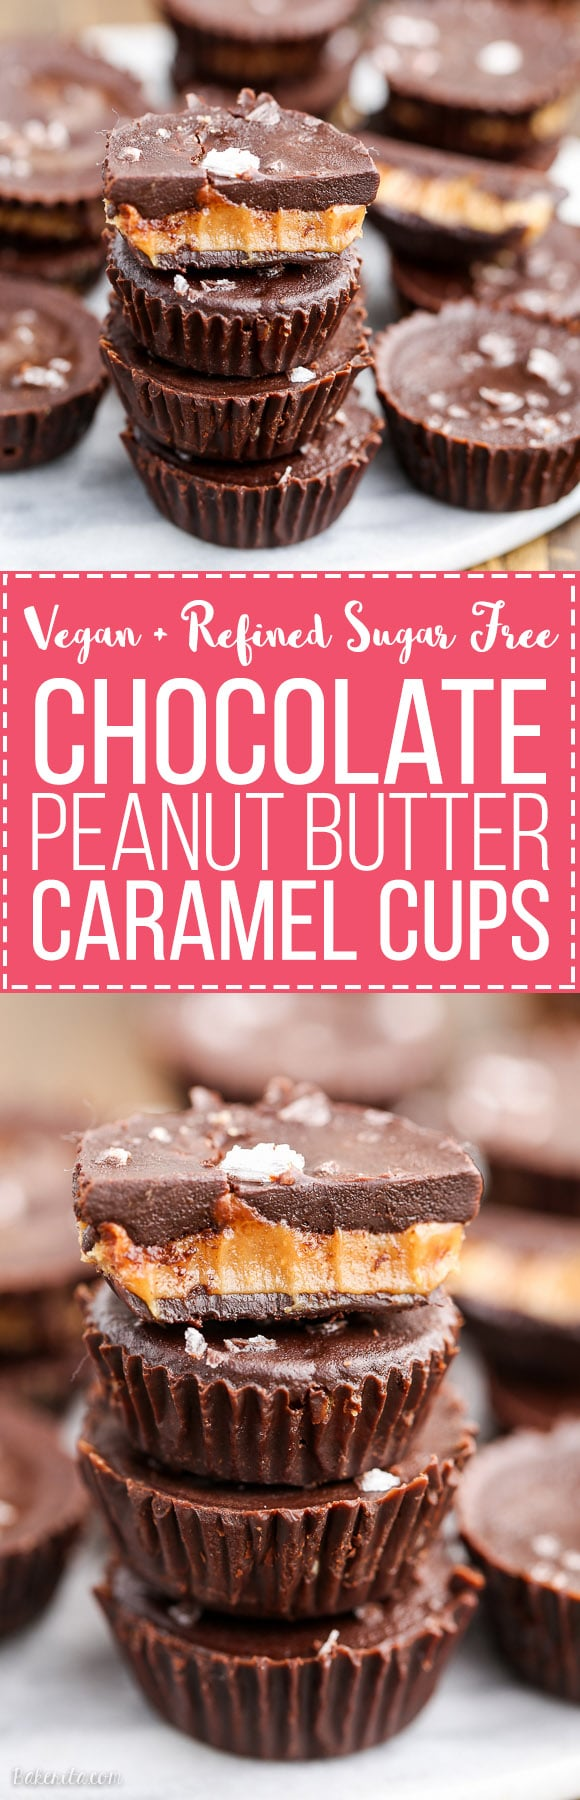 These Chocolate Peanut Butter Caramel Cups are made with homemade chocolate surrounding a gooey vegan peanut butter caramel. These refined sugar free treats are the perfect way to get your candy fix!